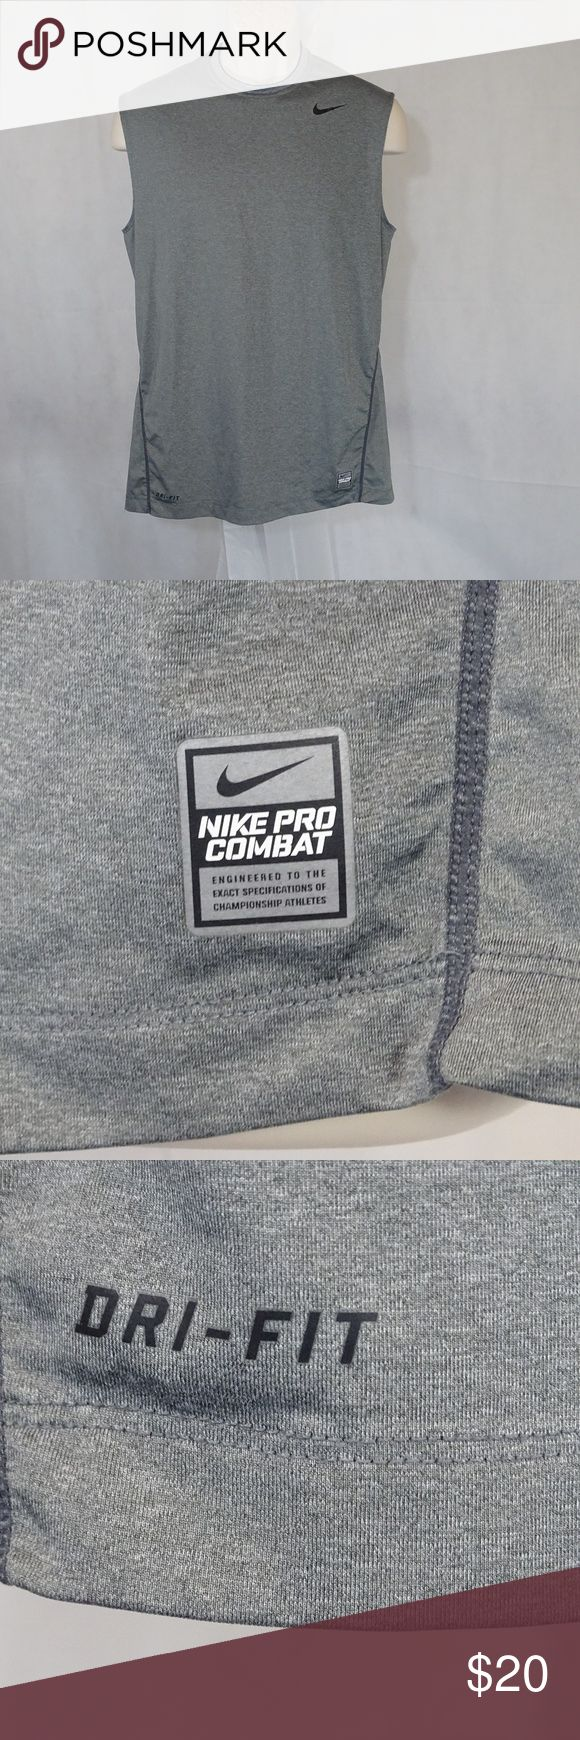 Nike Pro Combat Dri-Fit Fitted Muscle Shirt Large ITEM DESCRIPTION:  Nike Pro Combat Dri-Fit Fitted Muscle Shirt  Men Size: L  Color: Grey  Pattern: solid  Sleeve Length: sleeveless  Closure: pullover  Fabric: 84% Polyester 16% Spandex  Made in: Mexico  ITEM CONDITION:  Pre-owned…Great Used Condition!  ITEM MEASUREMENTS (Laying flat):  Chest (Armpit to Armpit): 20.5 in  Back Length: 29 in Nike Shirts